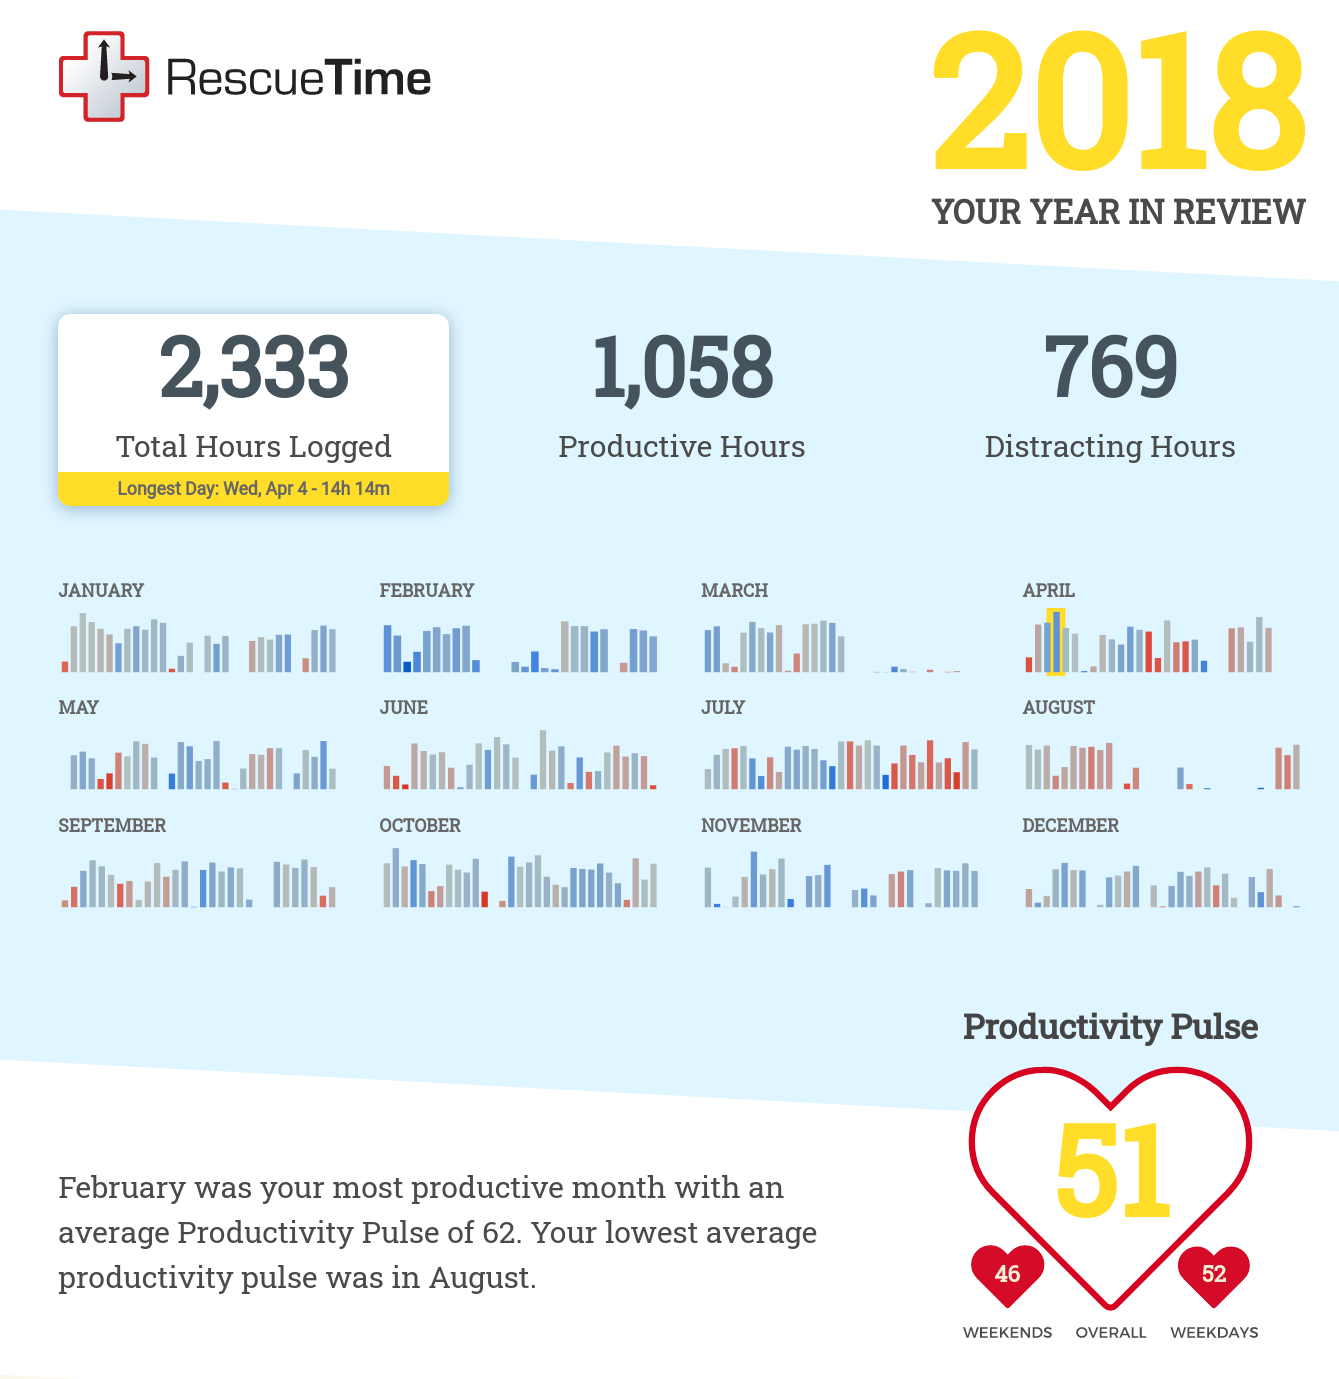 An infographic with information for every month of 2018 in small bars and text about productivity. 2333 total hours logged, 1058 productive hours, and 769 distracting hours. My productivity pulse is 54